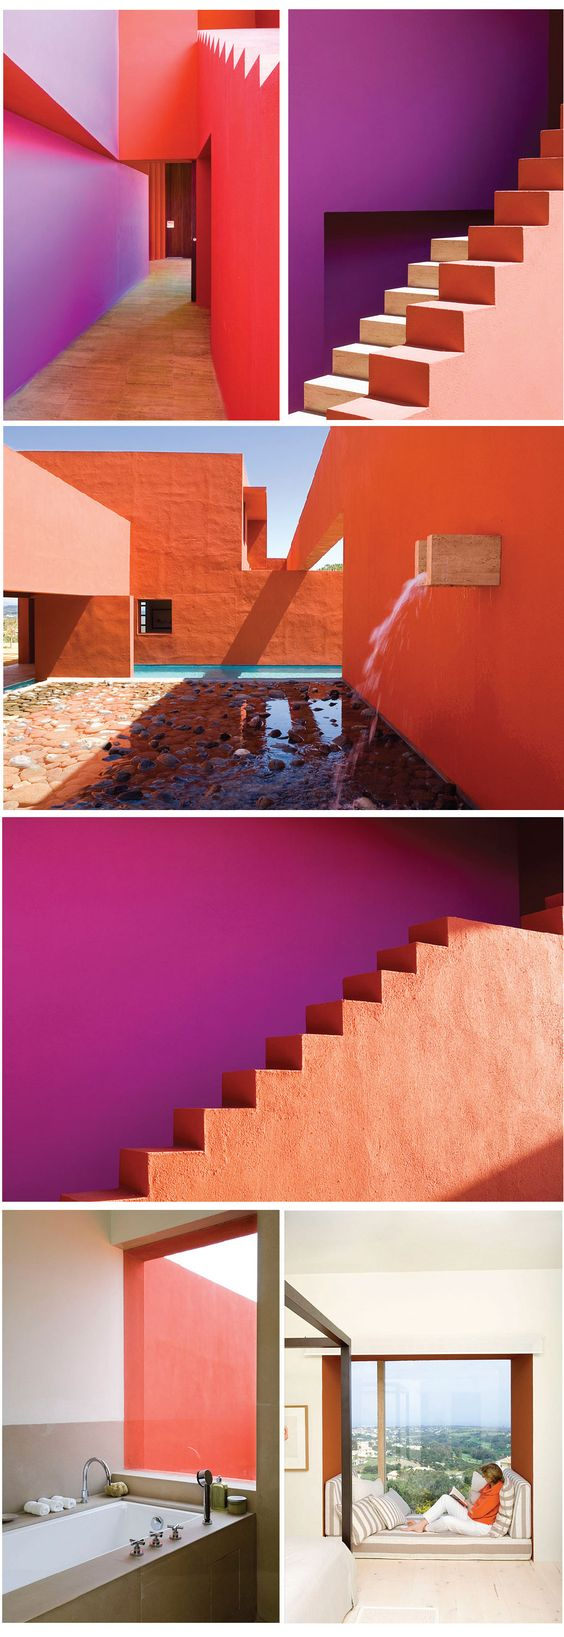 Admiring the bold color blocking created on the exterior surfaces of this residence in Legorreta, Spain. The interior is painted in a more neutral palette with the exterior colors repeated with discretion. You can see more images of this house on the website, 1st Option, a UK location sourcing company.